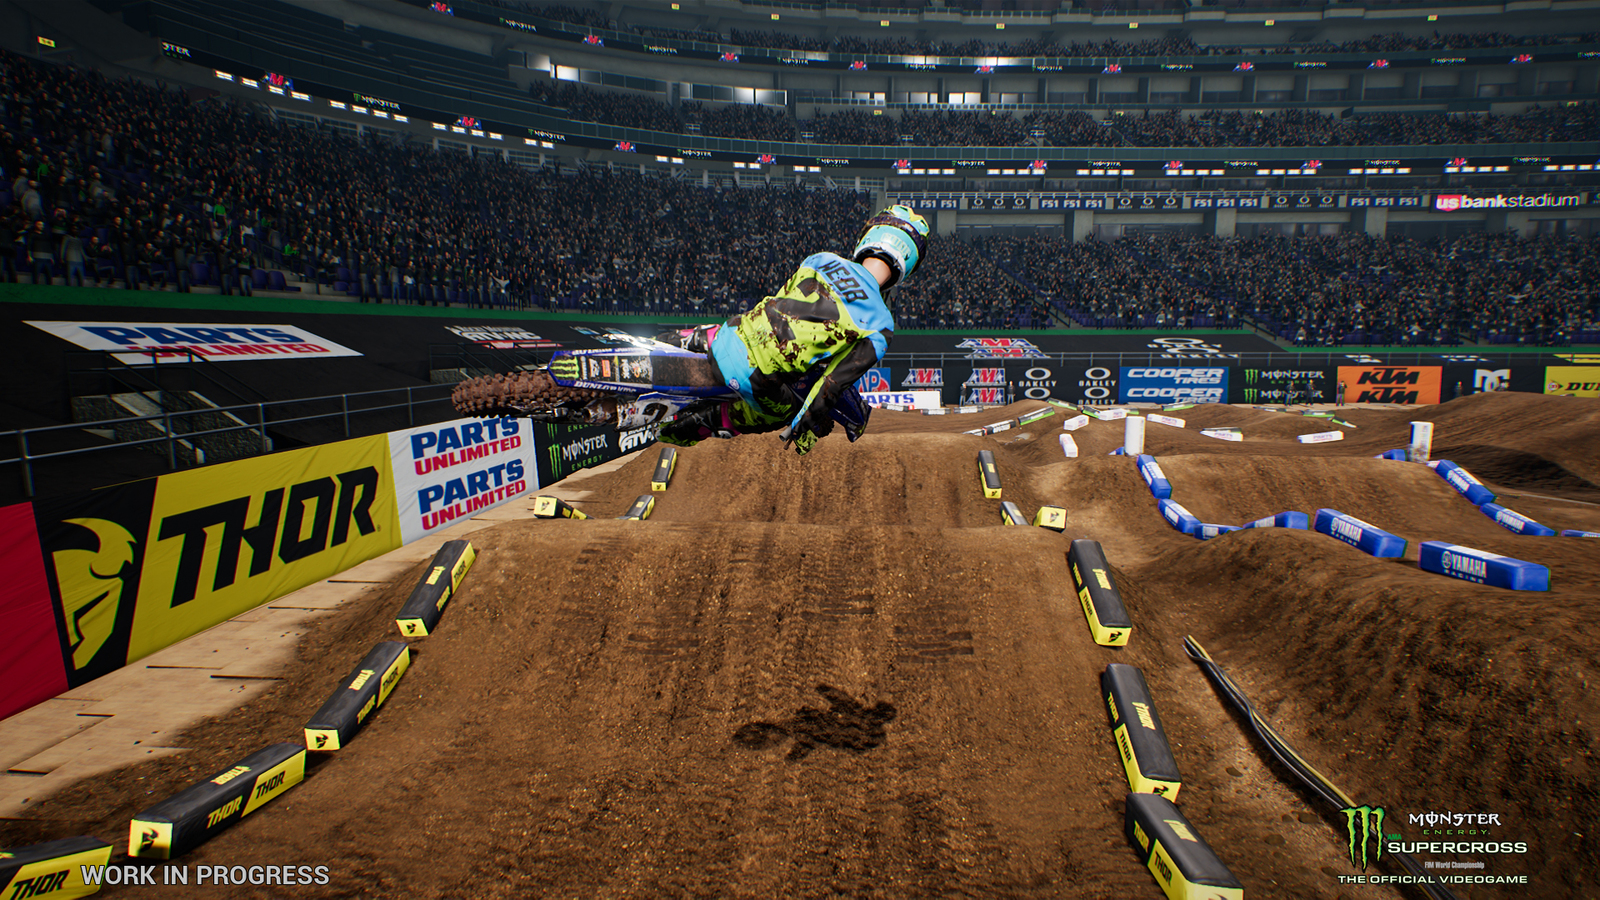 monster energy supercross the official videogame pc. Black Bedroom Furniture Sets. Home Design Ideas